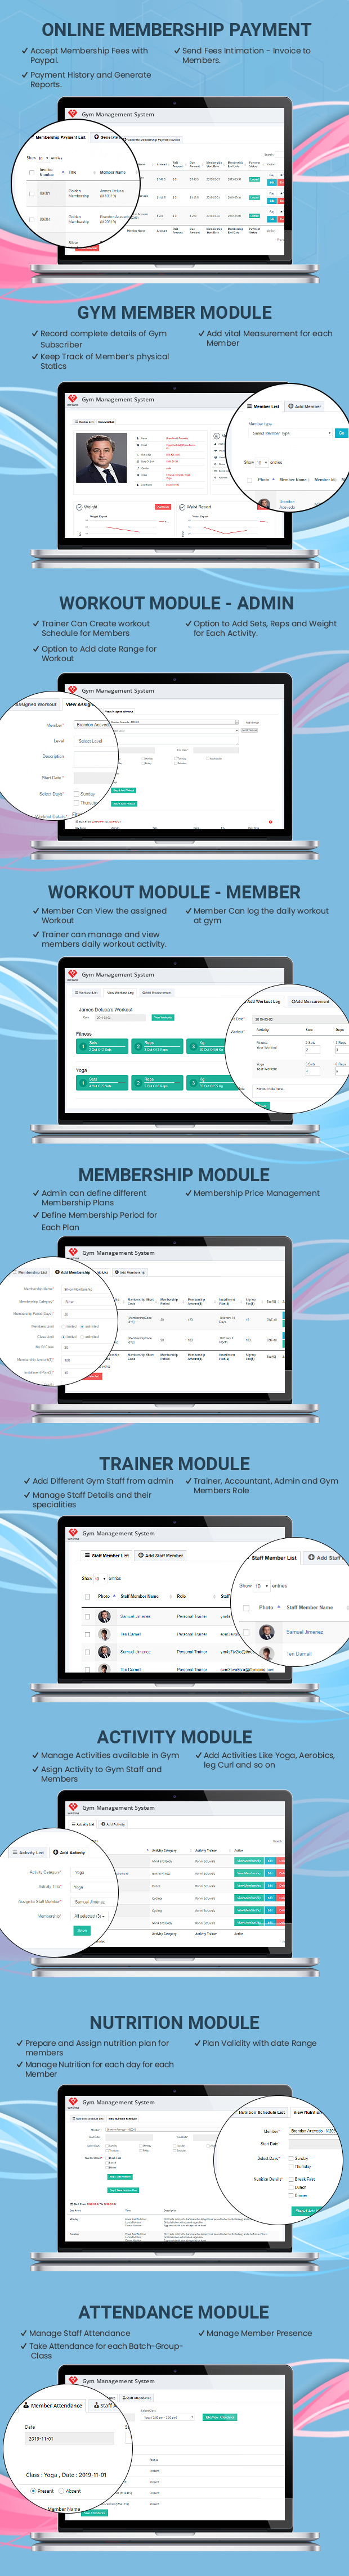 online payment gym Management System